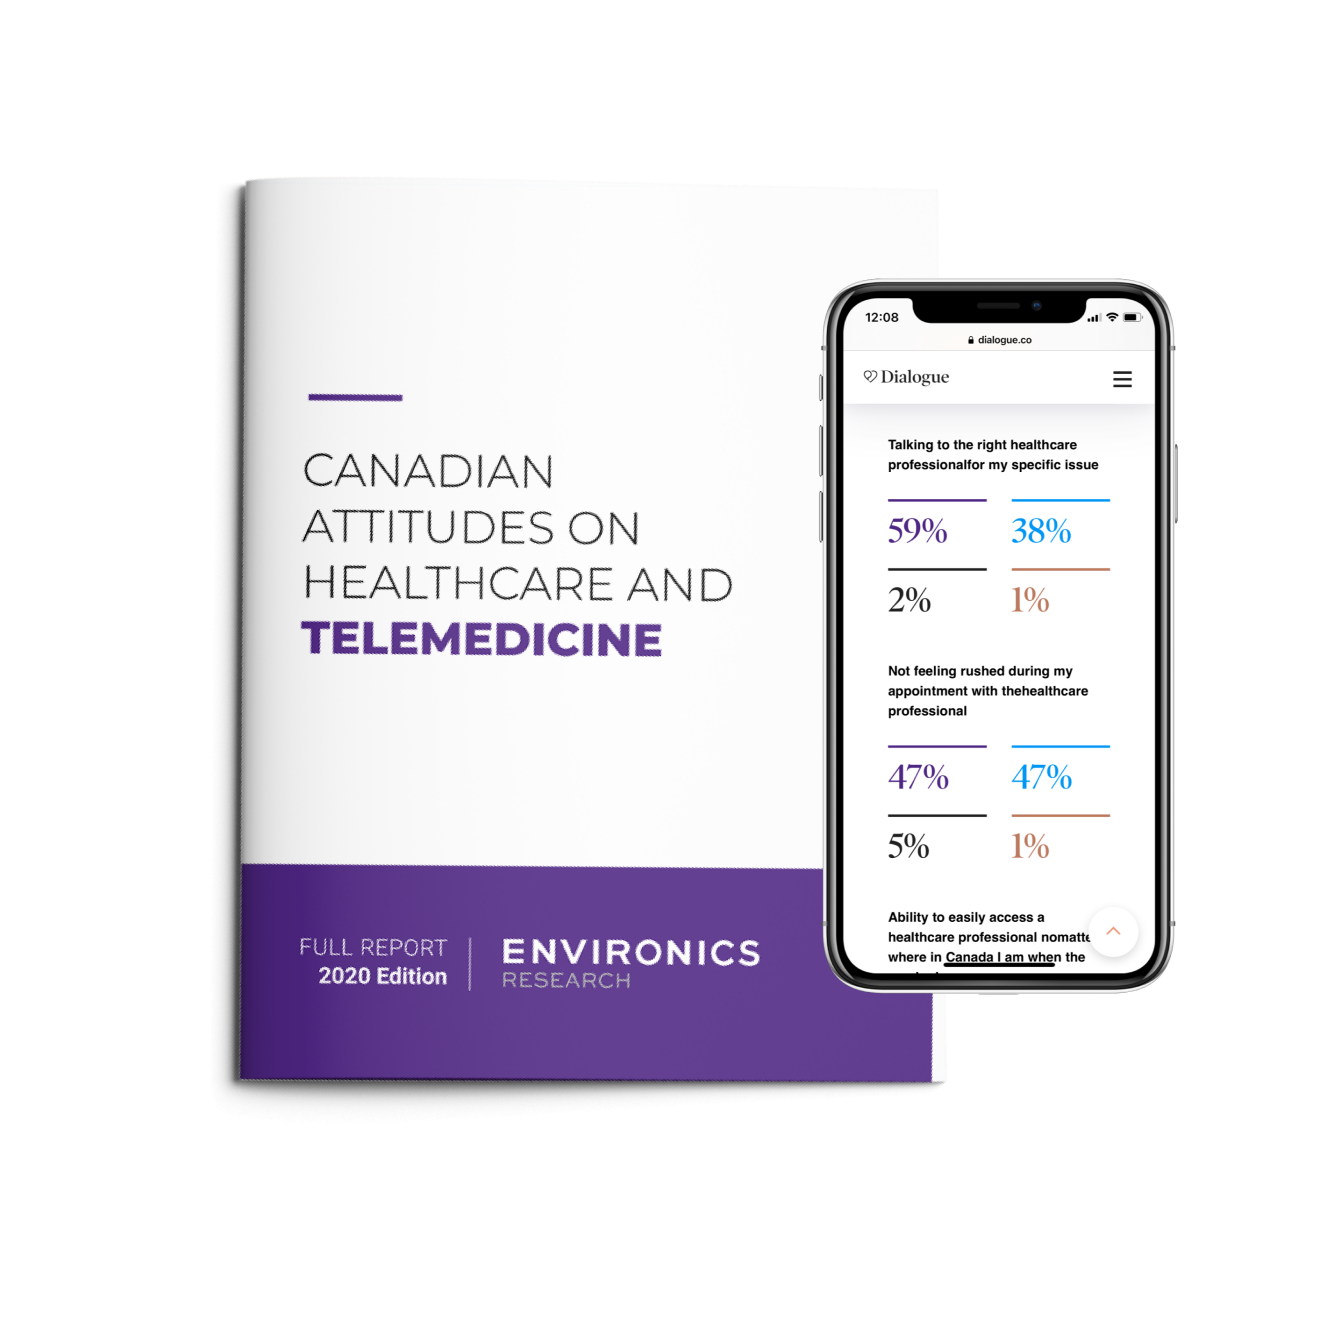 Canadian Attitudes on Healthcare and Telemedicine Report